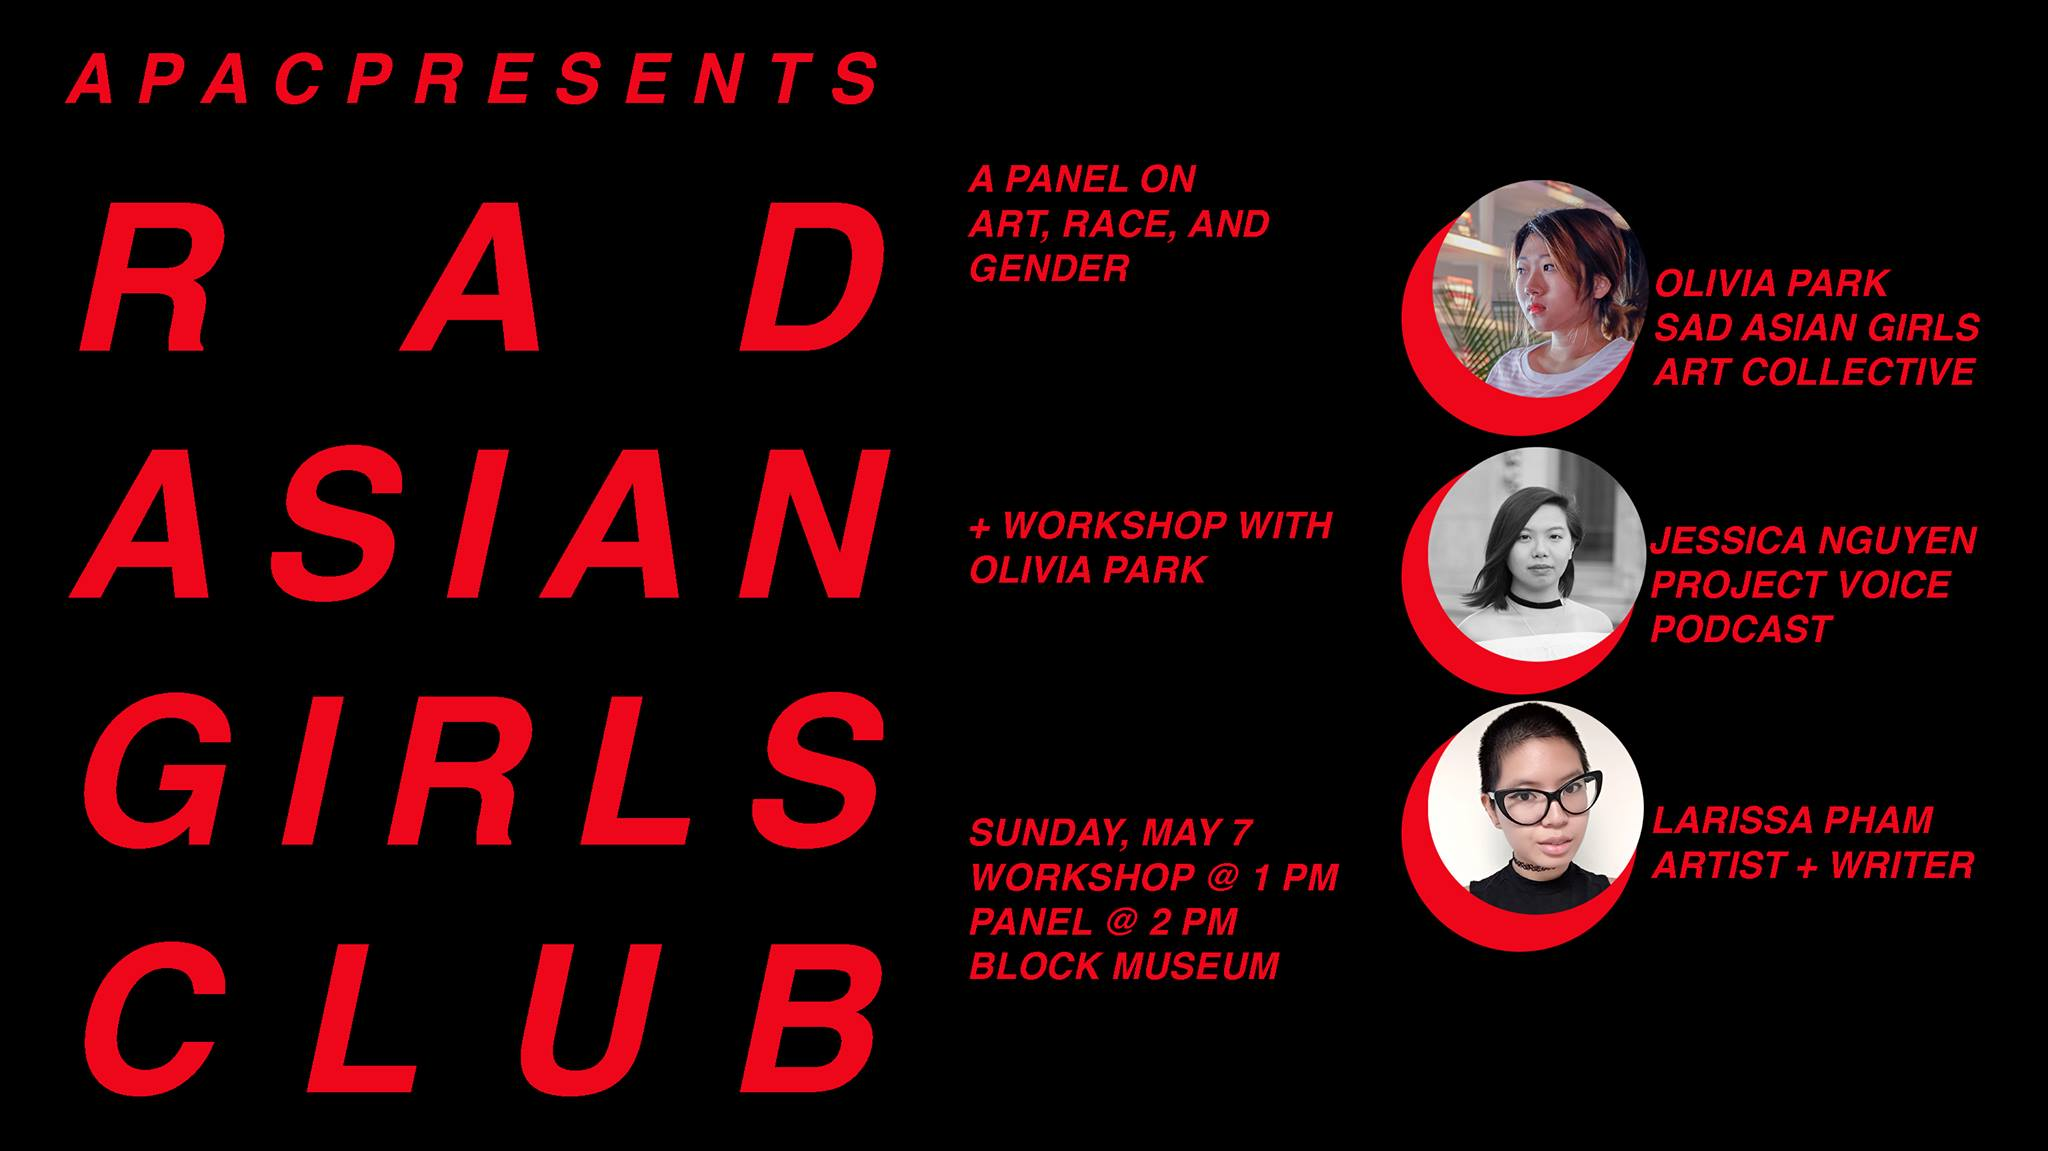 RAD ASIAN GIRLS: A Panel on Art, Race and Gender at Northwestern University - May 17th, 2017